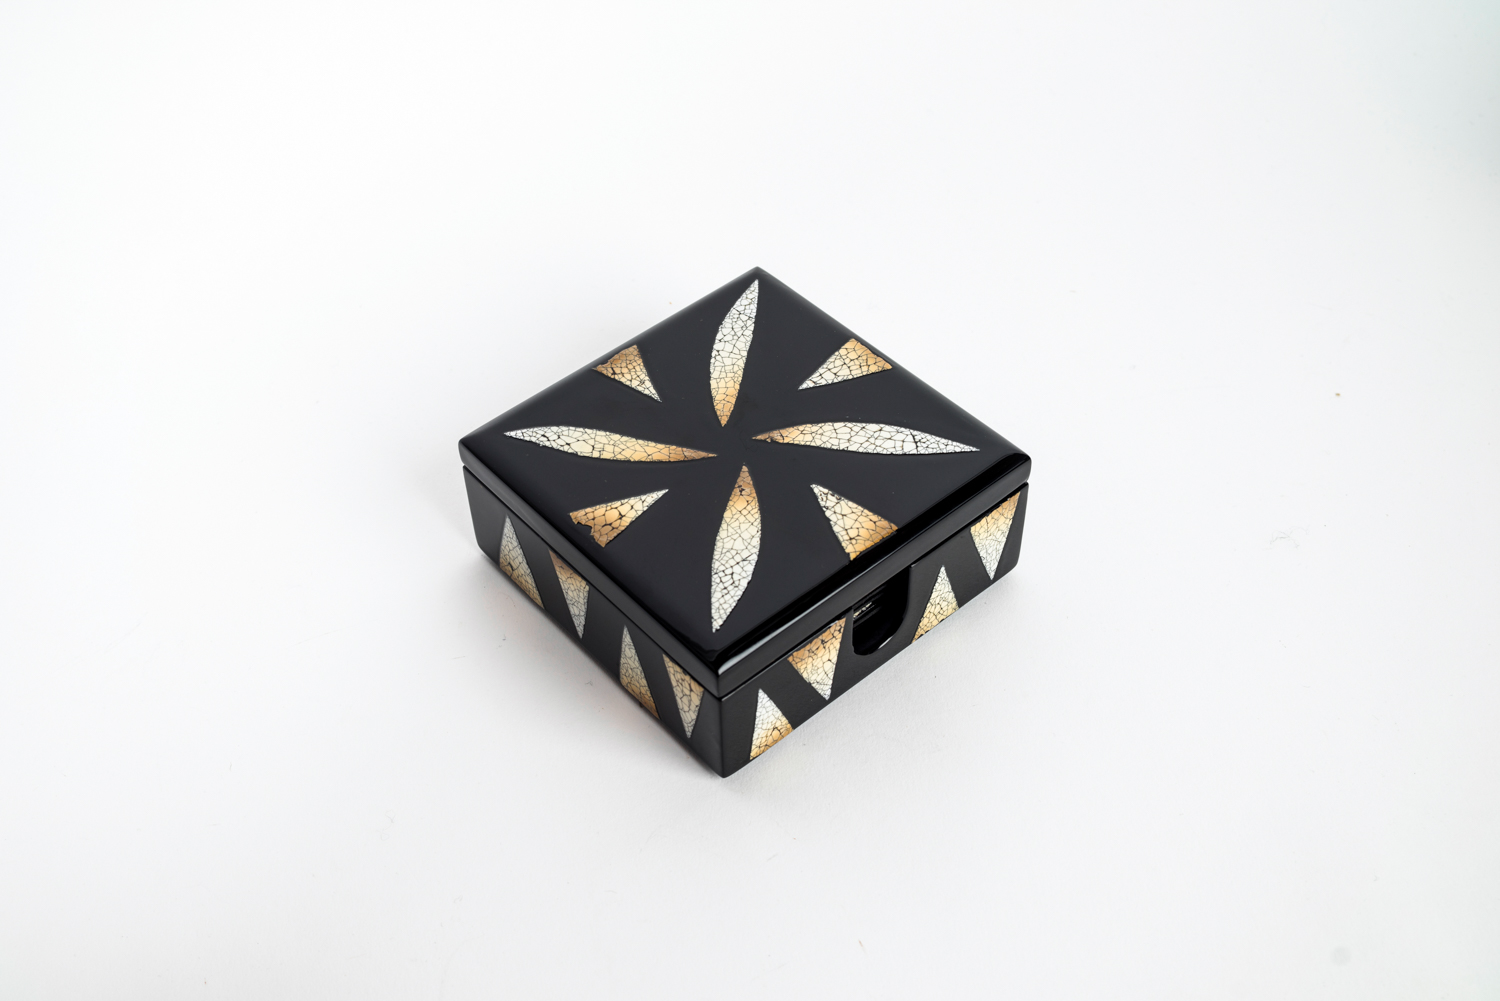 Eggshell mosaic wooden lacquer box containing matching coaster set.